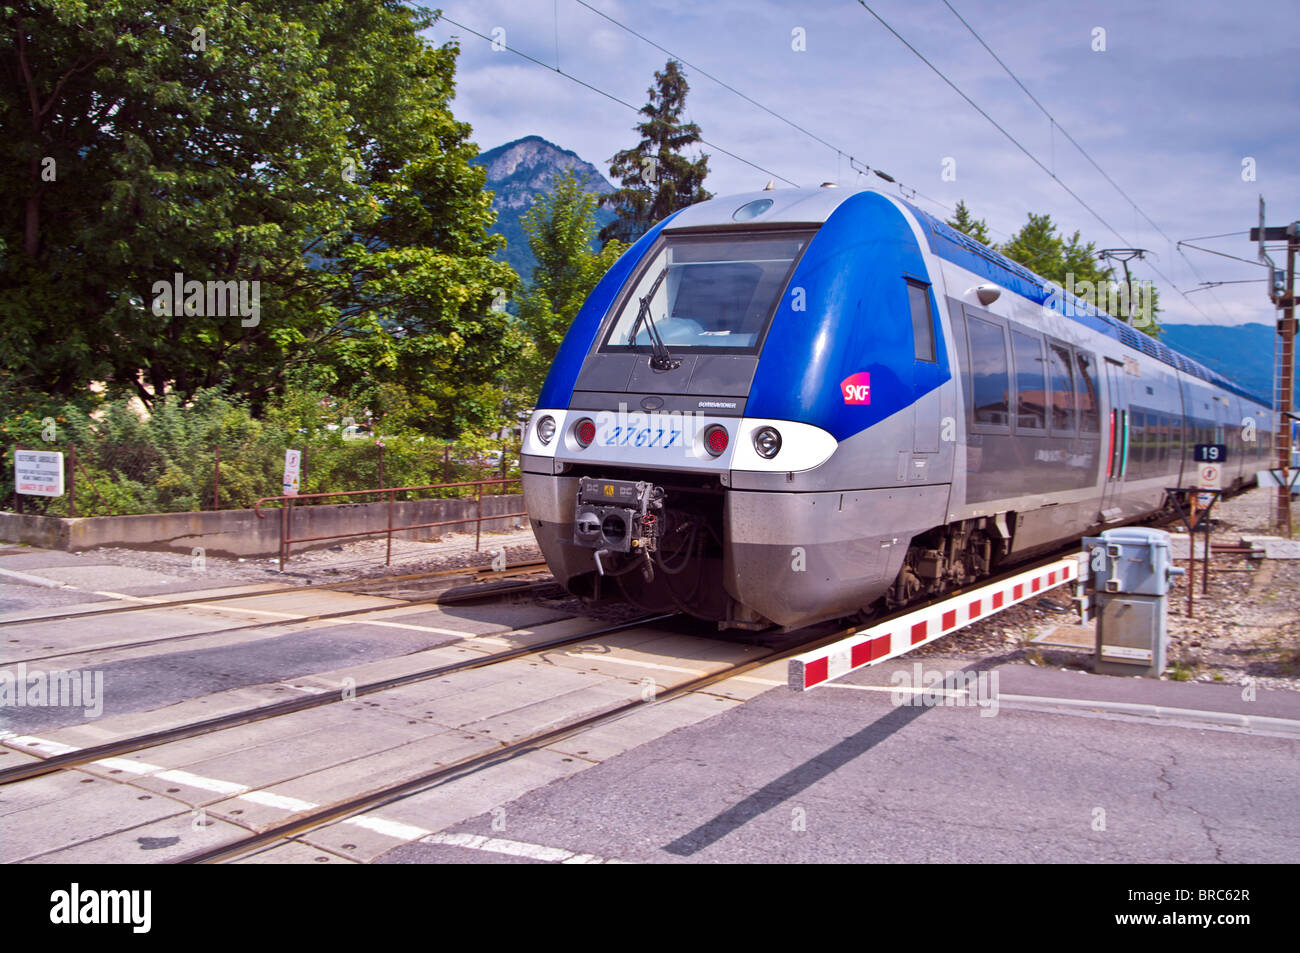 a T.E.R (Train Express Regional) manufactured by Bombardier - Stock Image